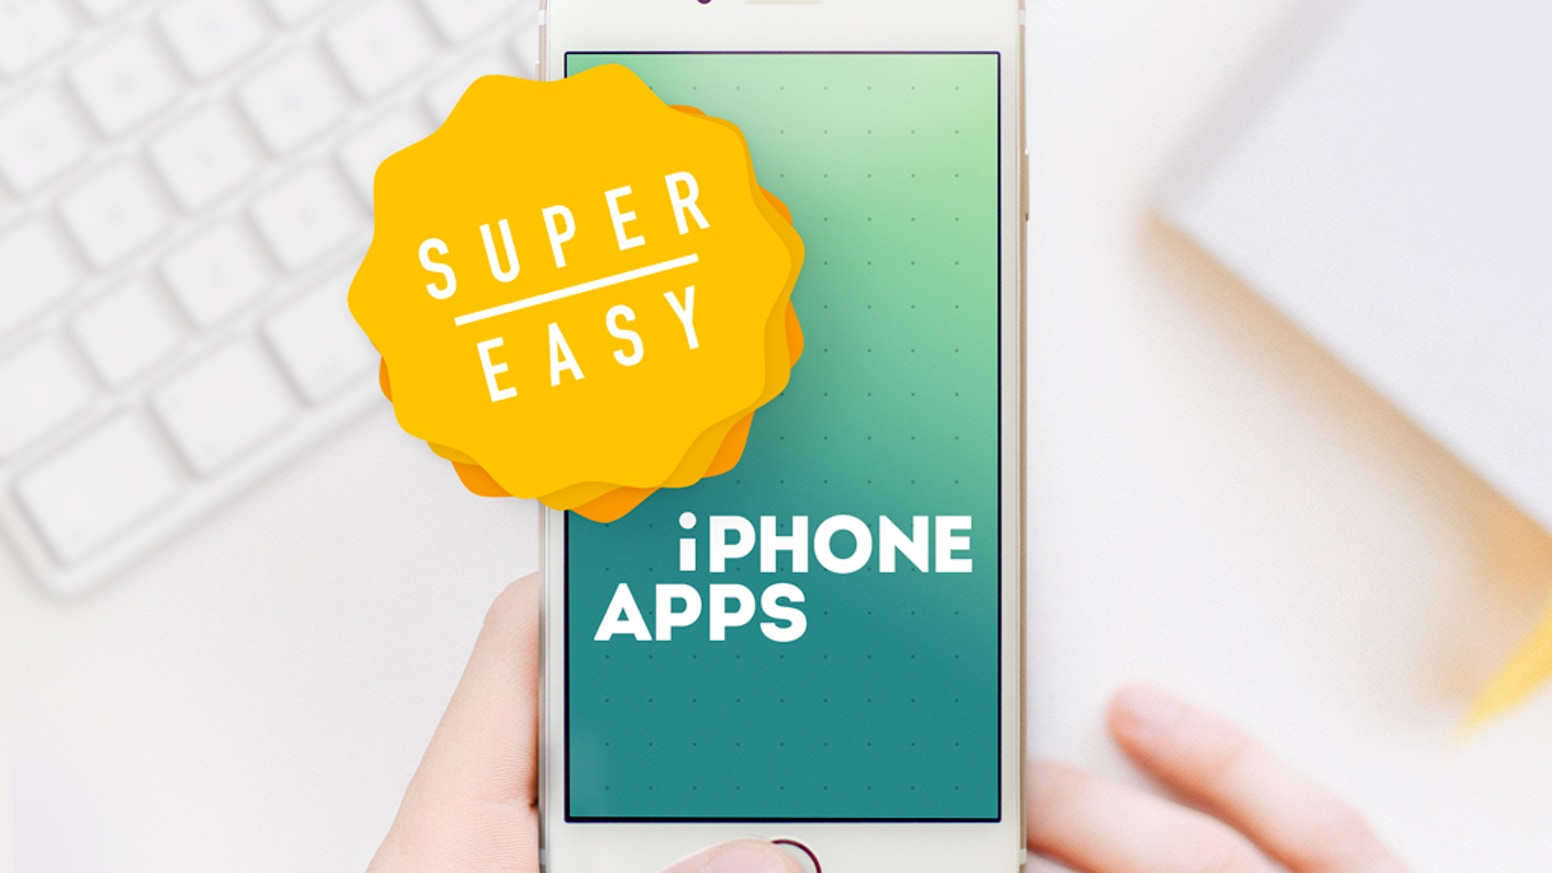 Ultimate Beginner Course Series: Enjoy a beginner-friendly forum for creating polished iPhone apps using Swift 2, iOS 9, and Xcode 7.